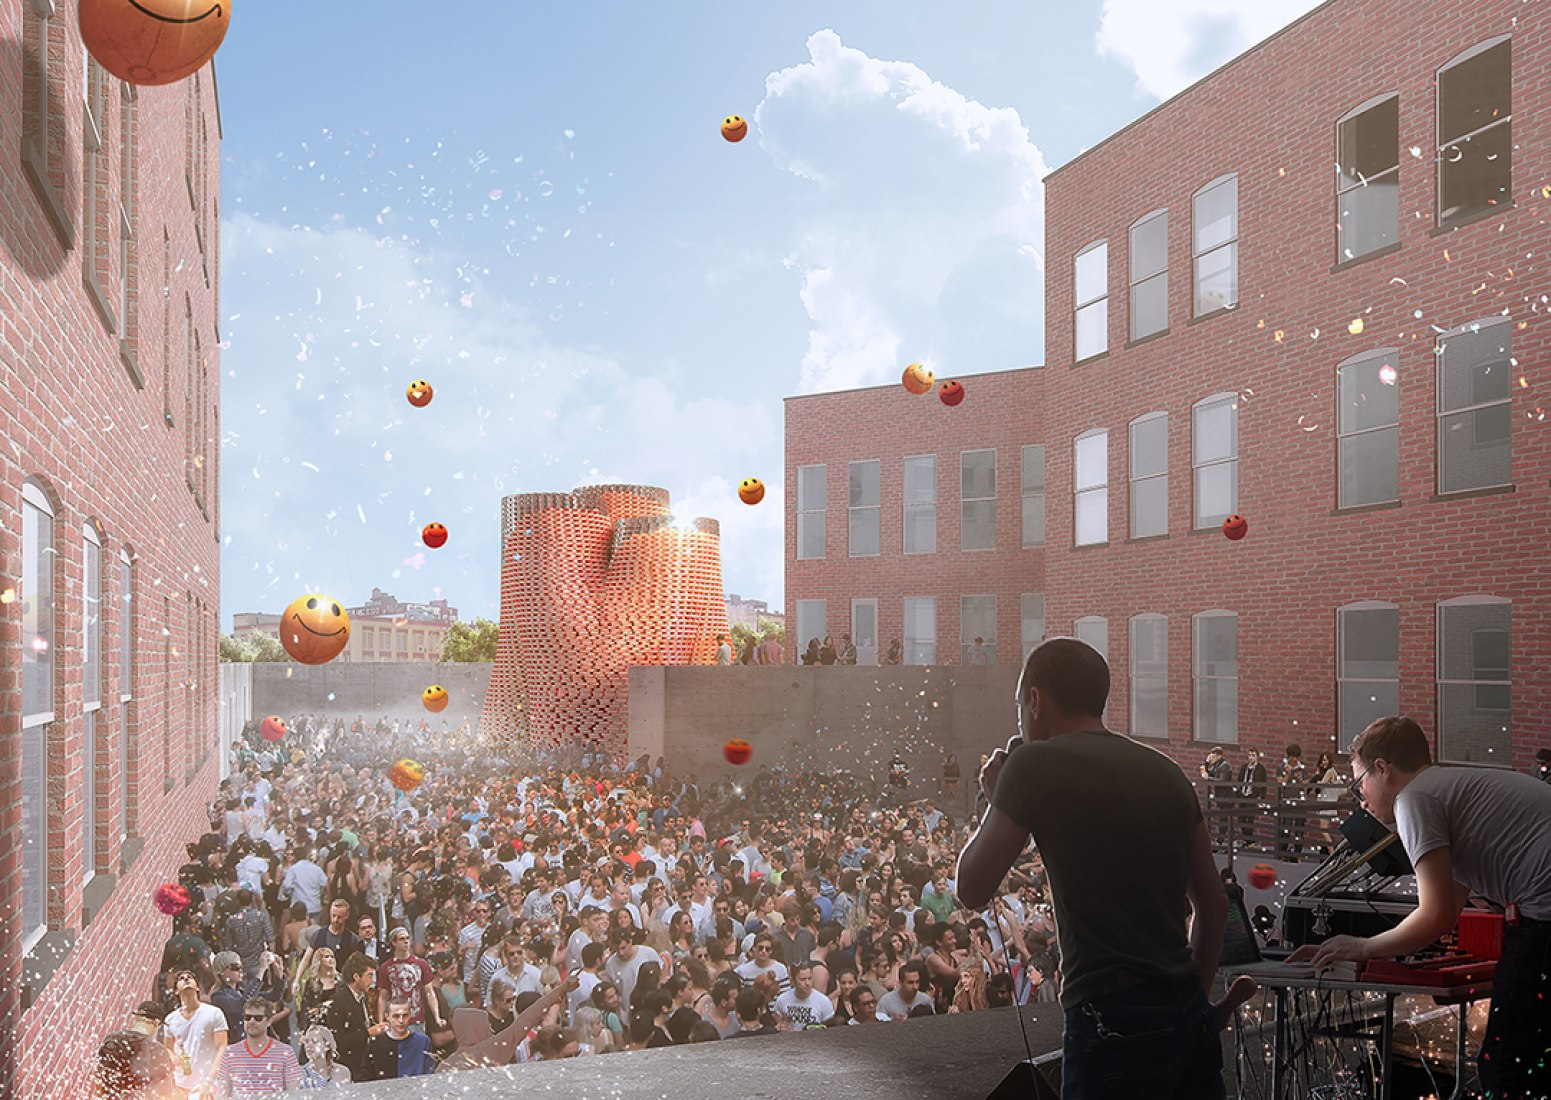 Rendering of The Living's Hy-Fi, winning design of the 2014 Young Architects Program. The Museum of Modern Art and MoMAPS1.